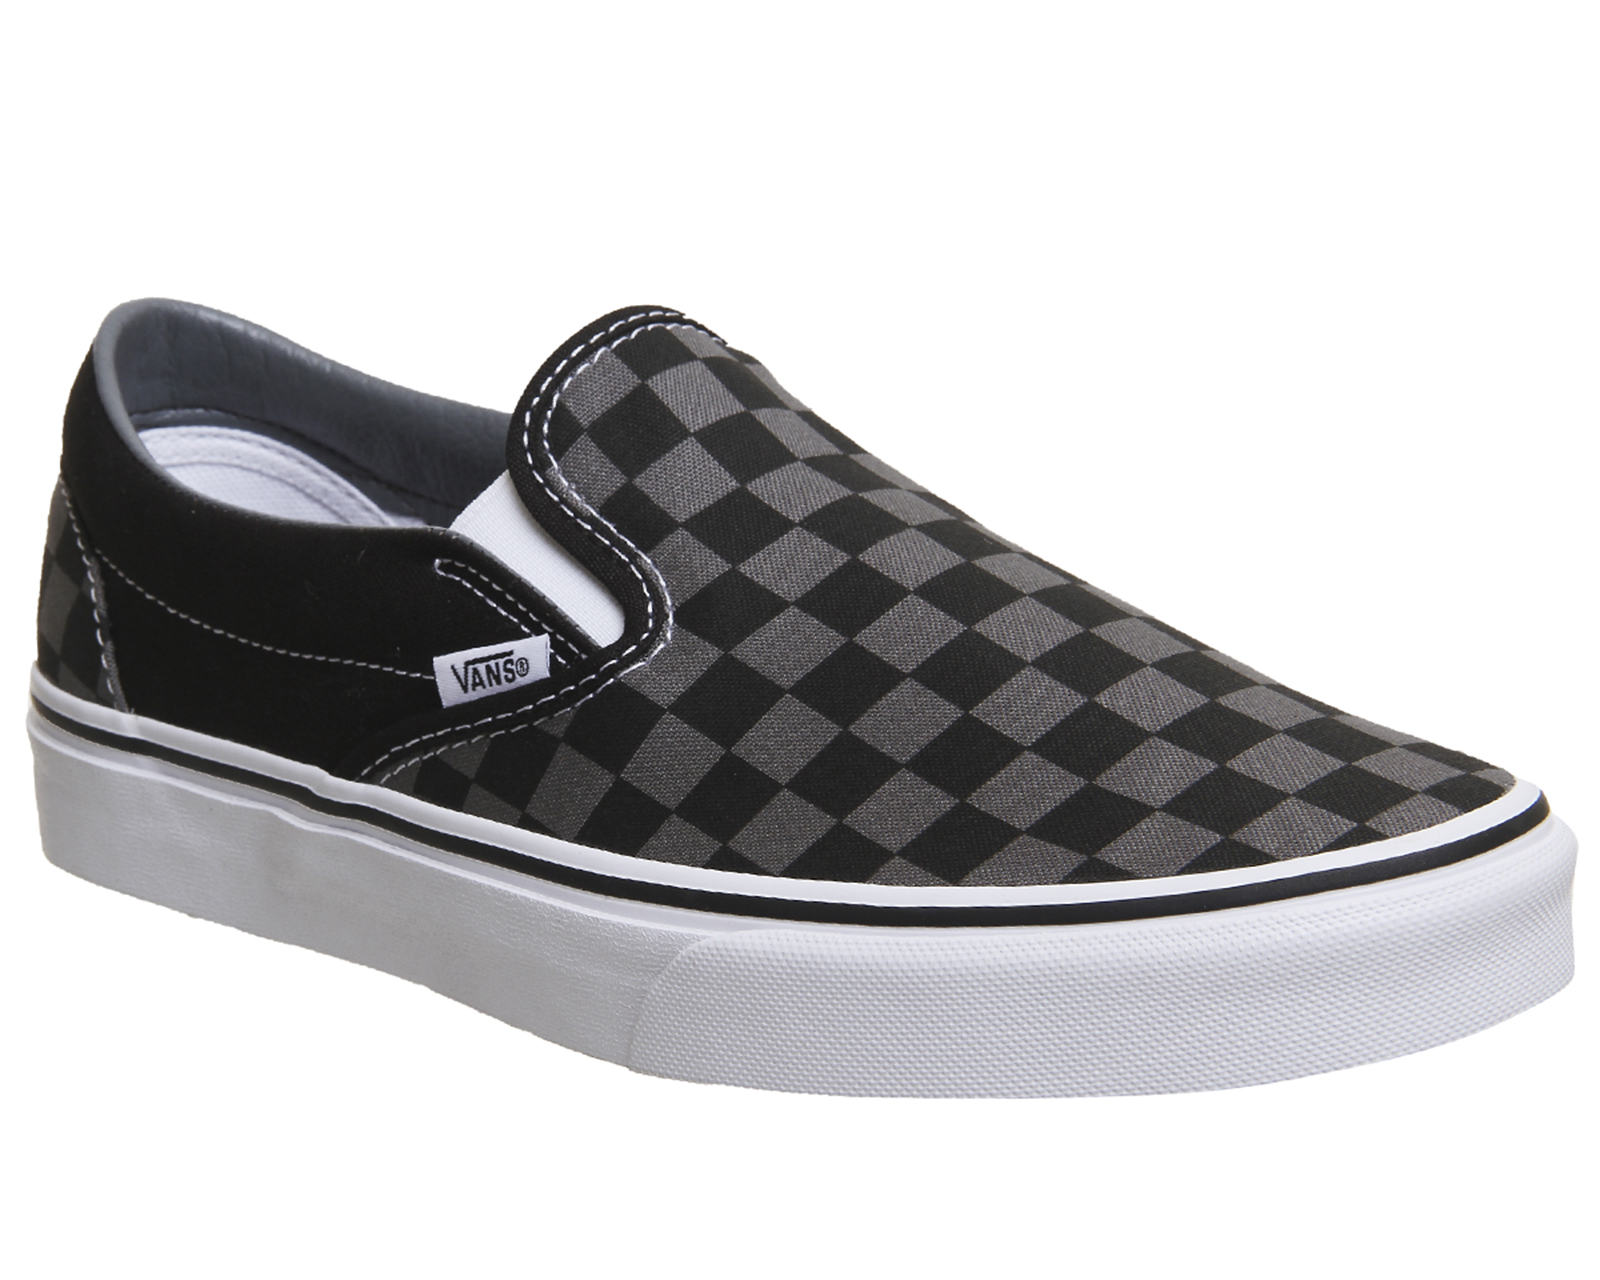 dd4970646f Sentinel Mens Vans Vans Classic Slip On Trainers Black Pewter Check  Trainers Shoes